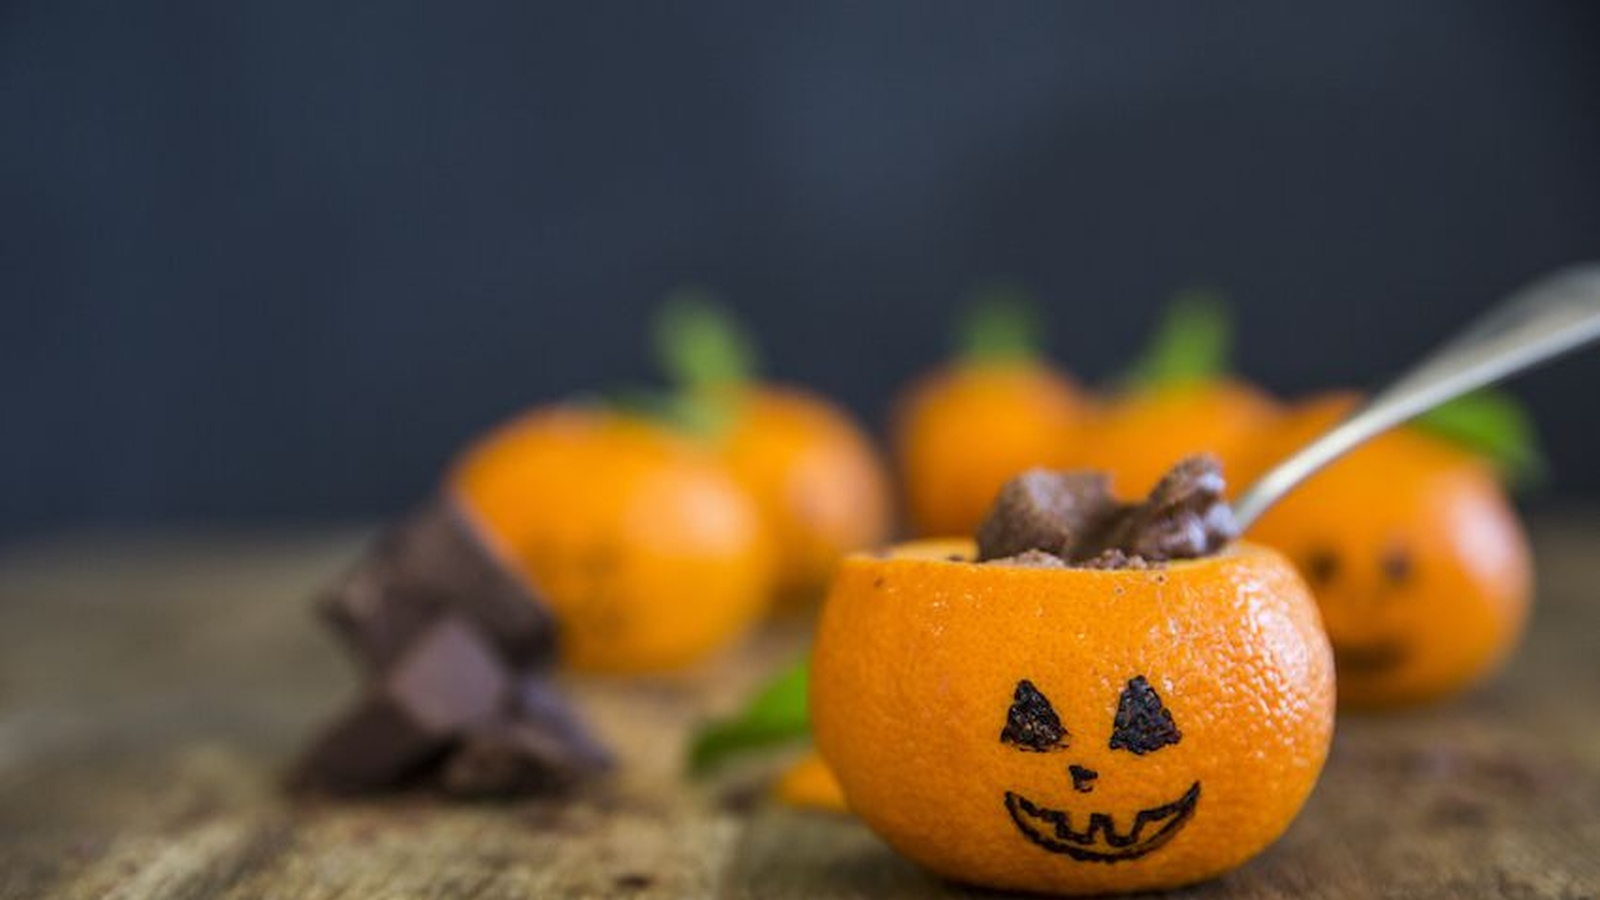 CHOCOLATE MOUSSE JACK O' LANTERNS